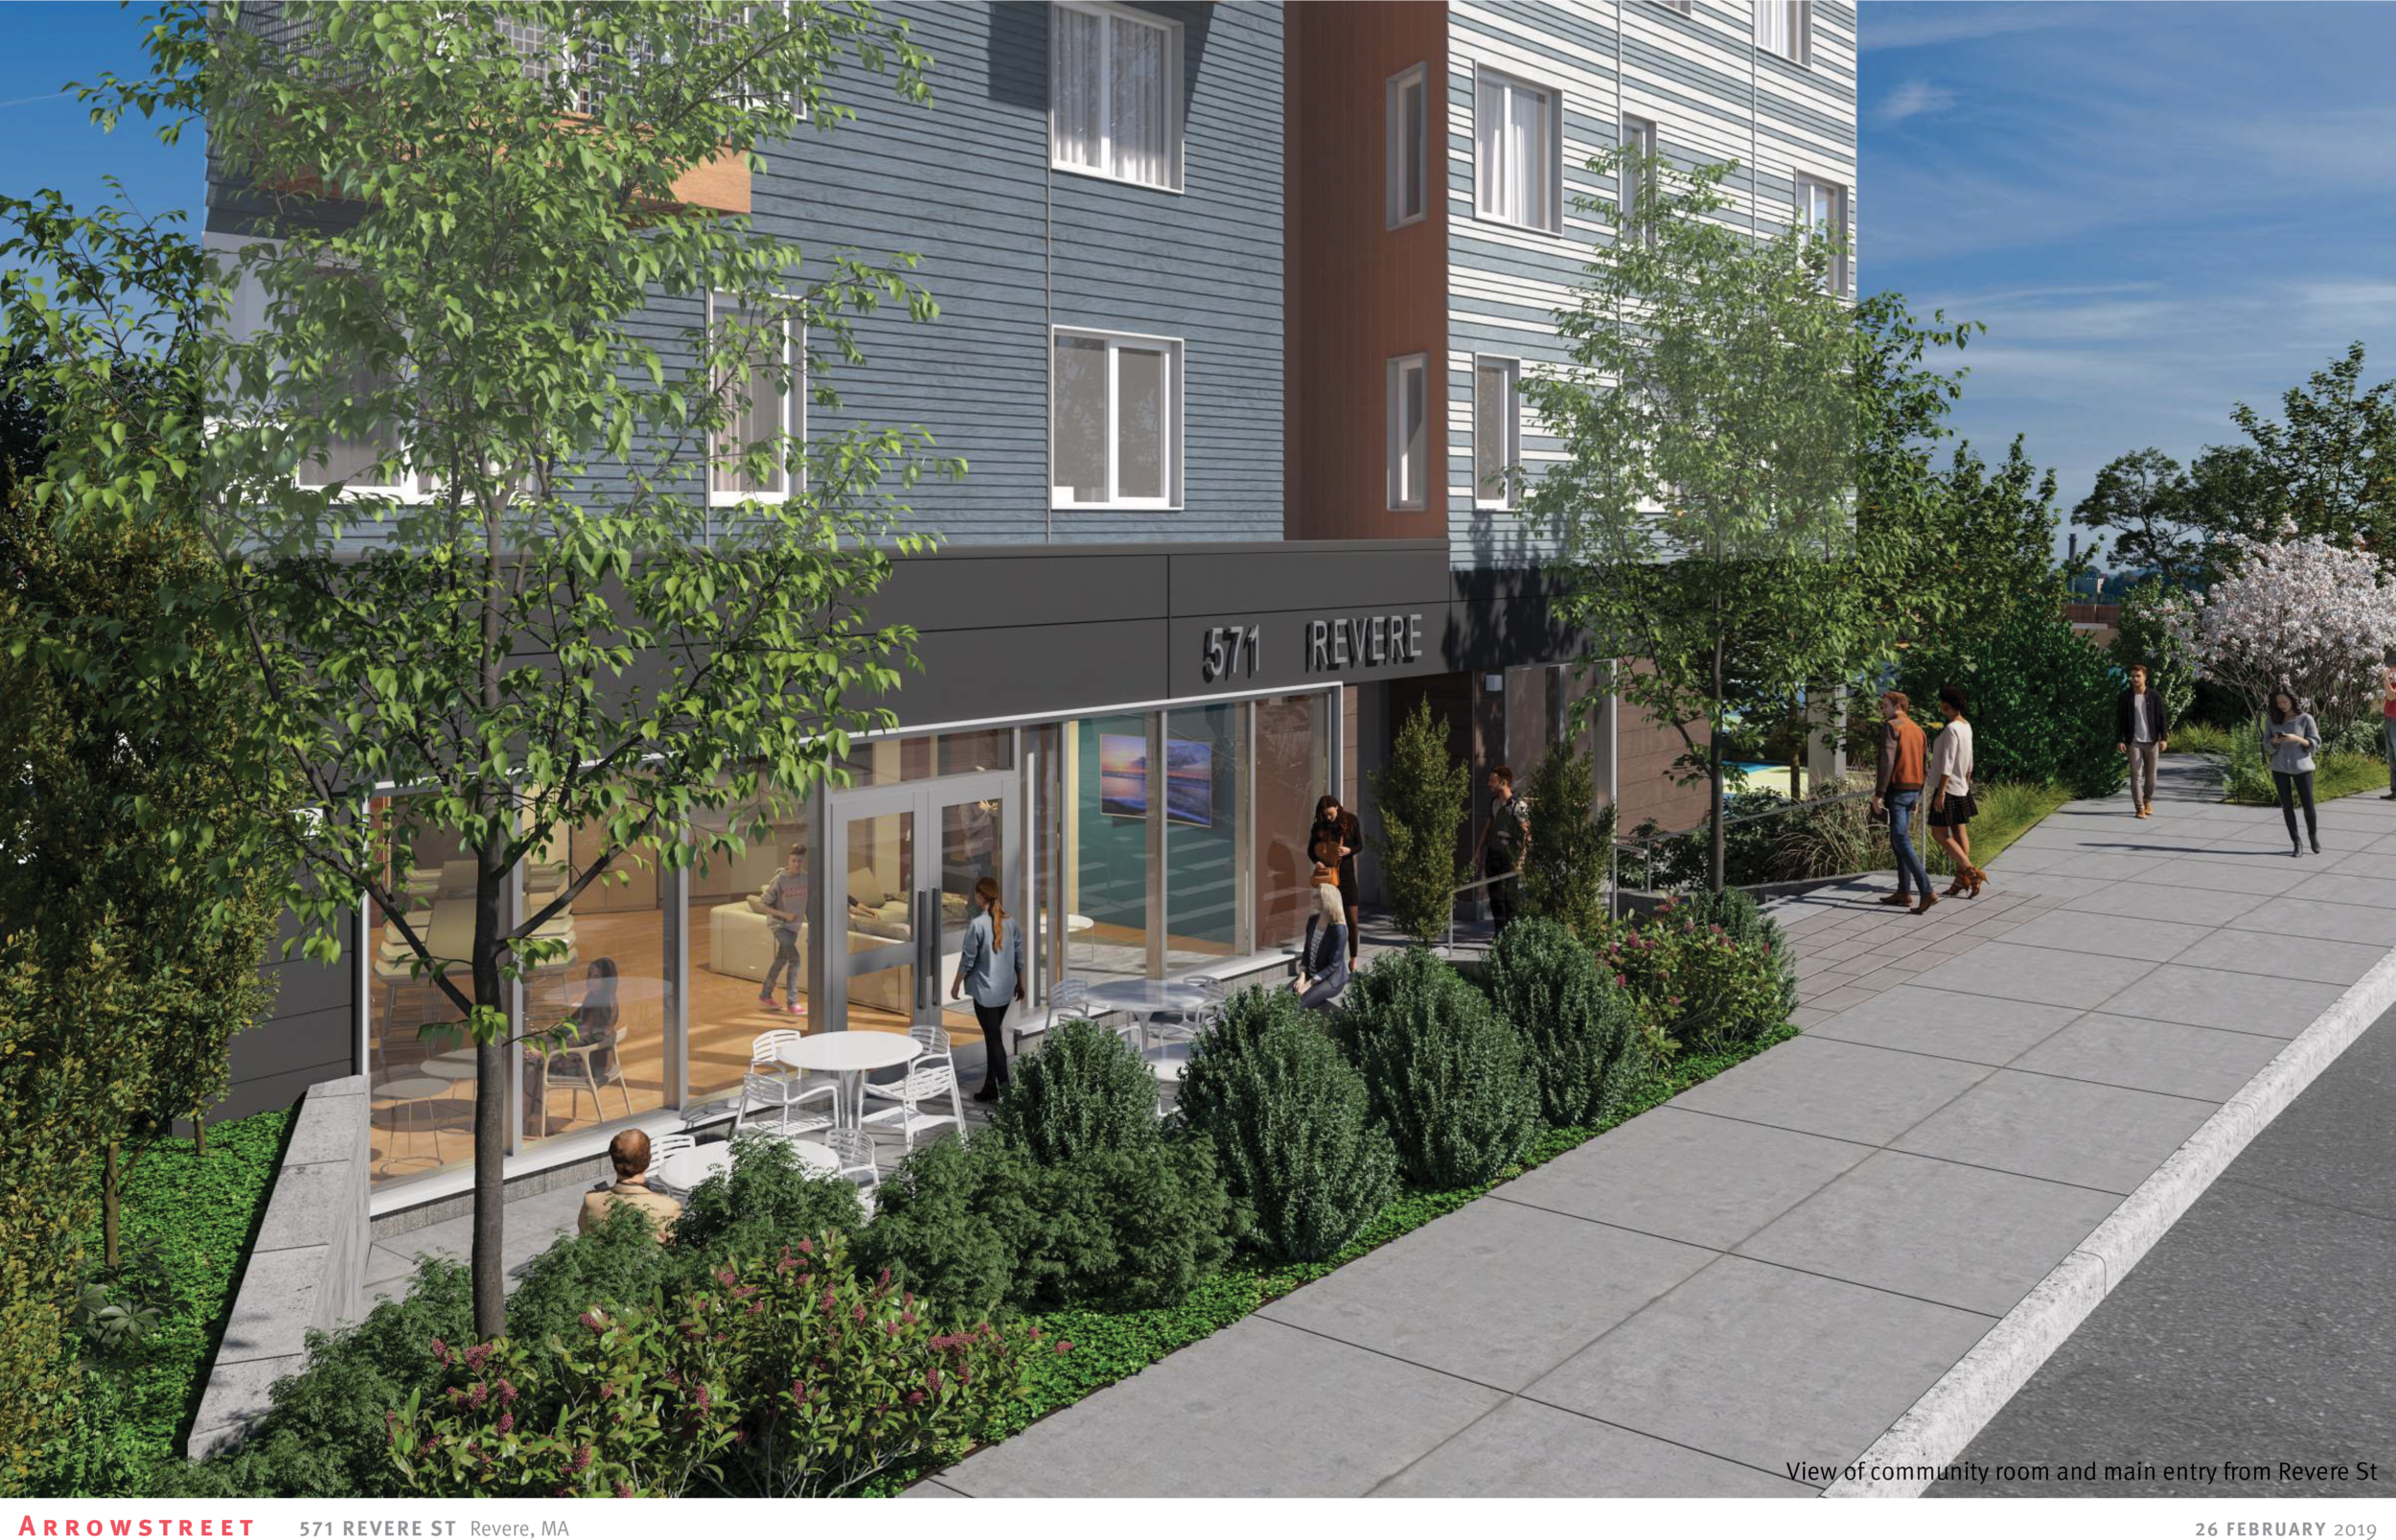 New Affordable Homes Coming to Revere    project's page